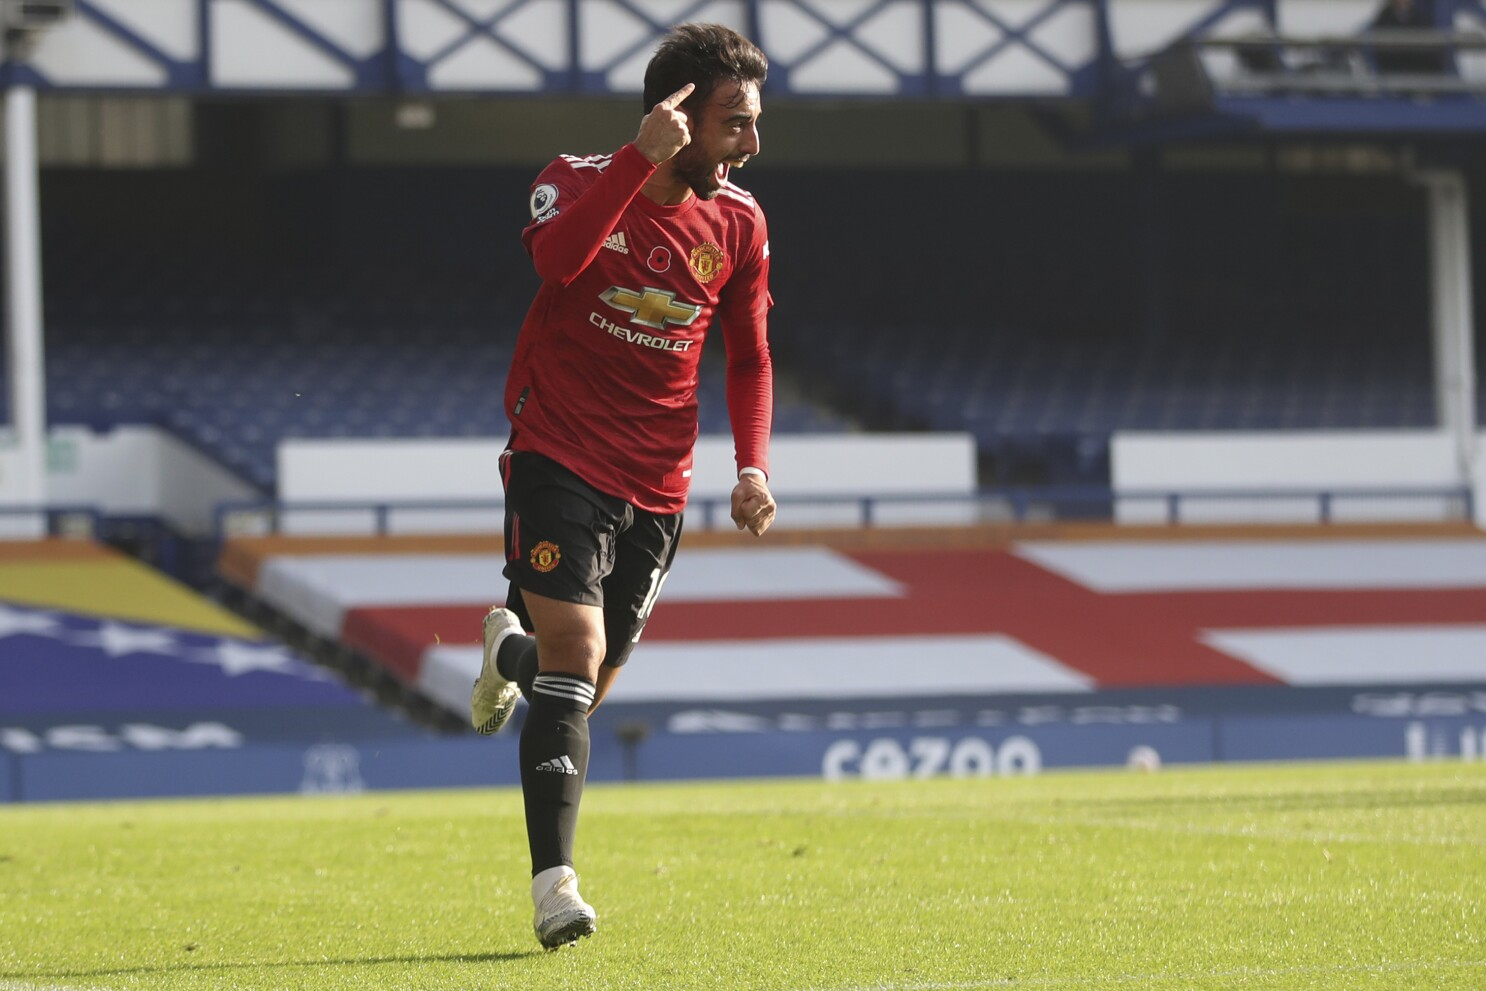 Solskjaer Gets Response As Man Utd Beats Everton 3 1 In Epl The San Diego Union Tribune